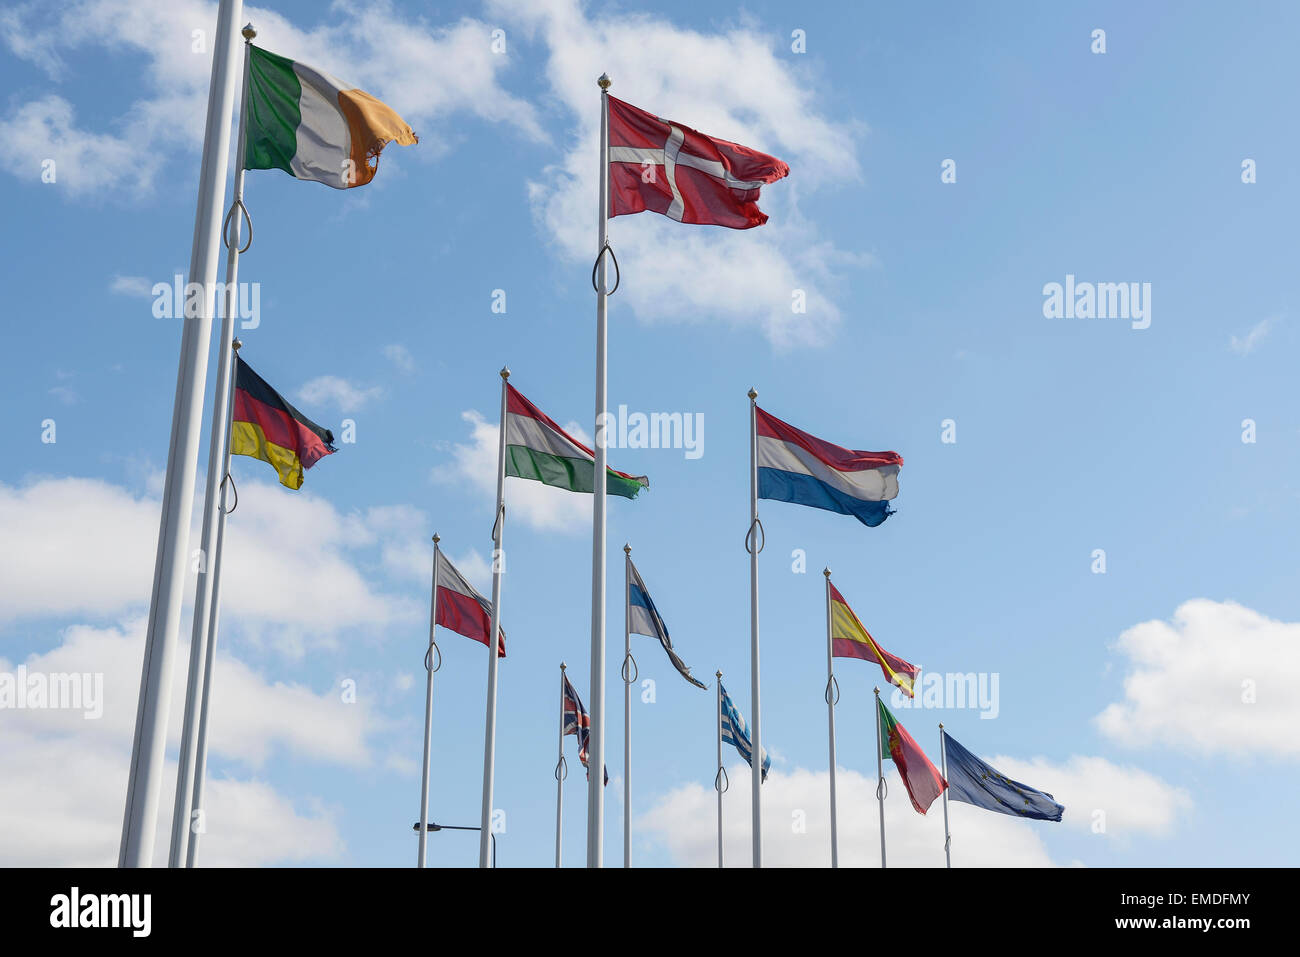 Flags of countries in Europe - Stock Image